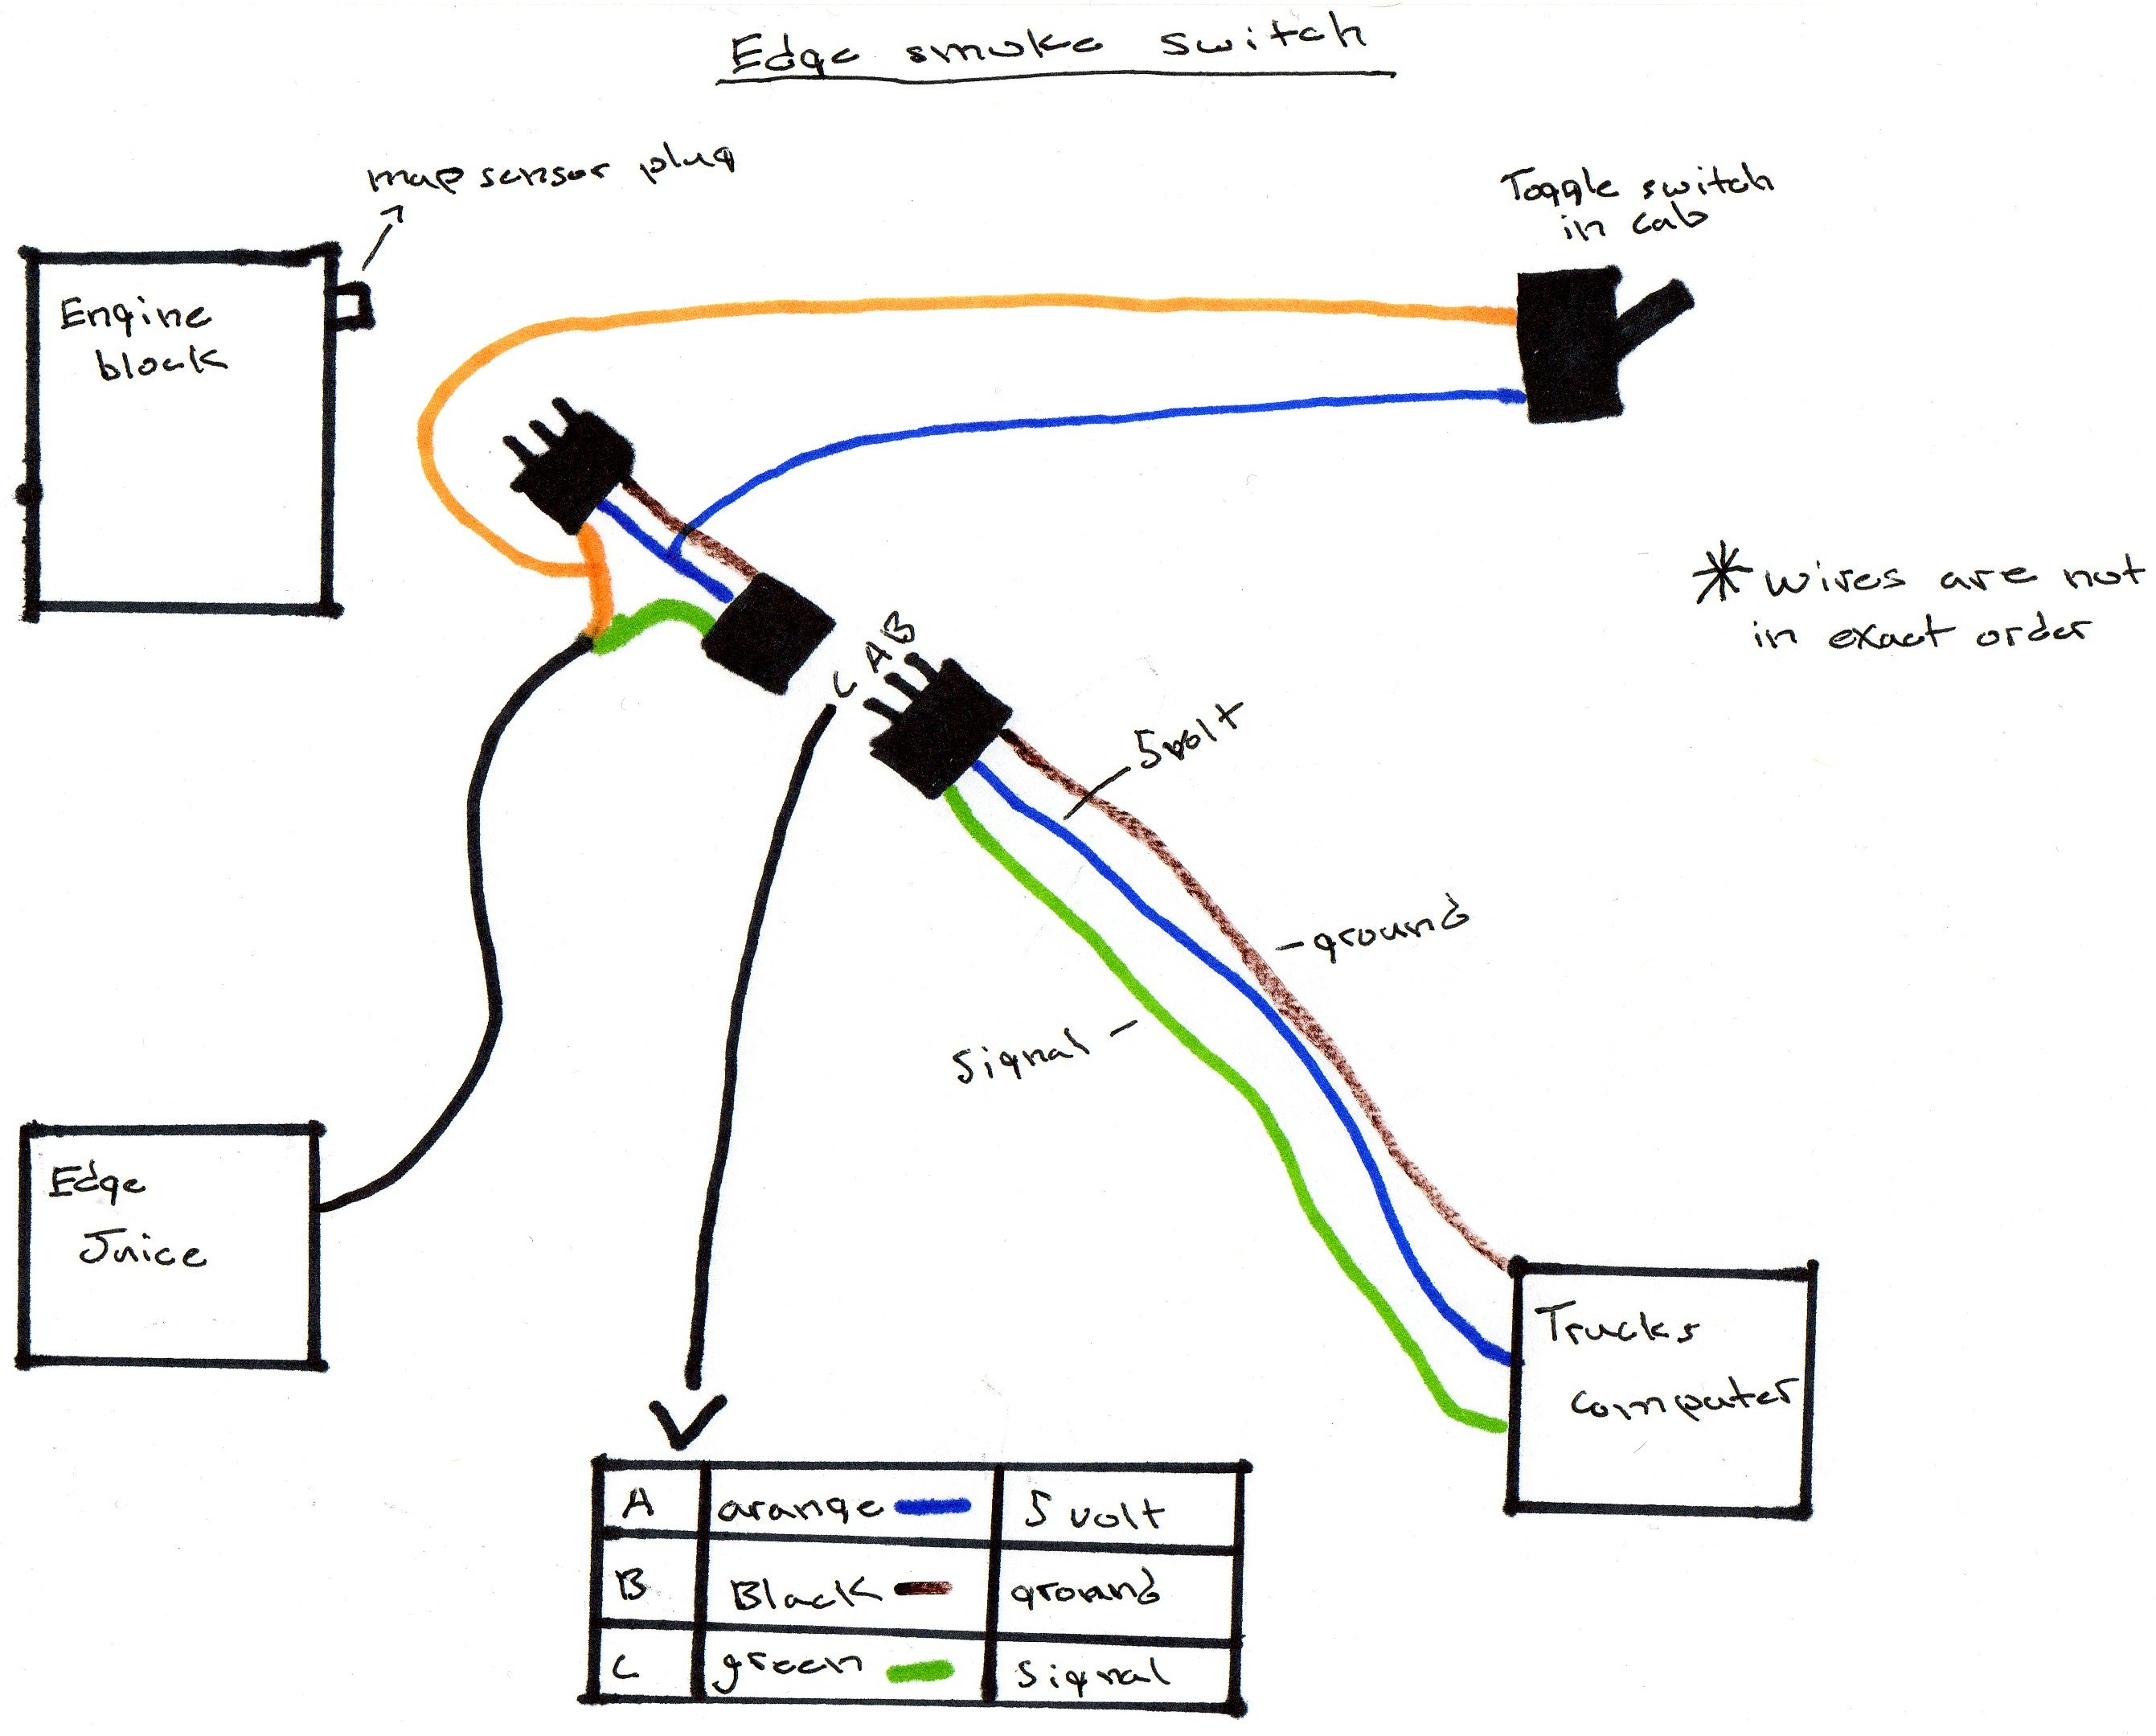 01 Cummins Smoke Switch Wiring Diagram Online Manuual Of Engine Wont Work Dodge Diesel Forum Rh Cumminsforum Com Ecm Diagrams